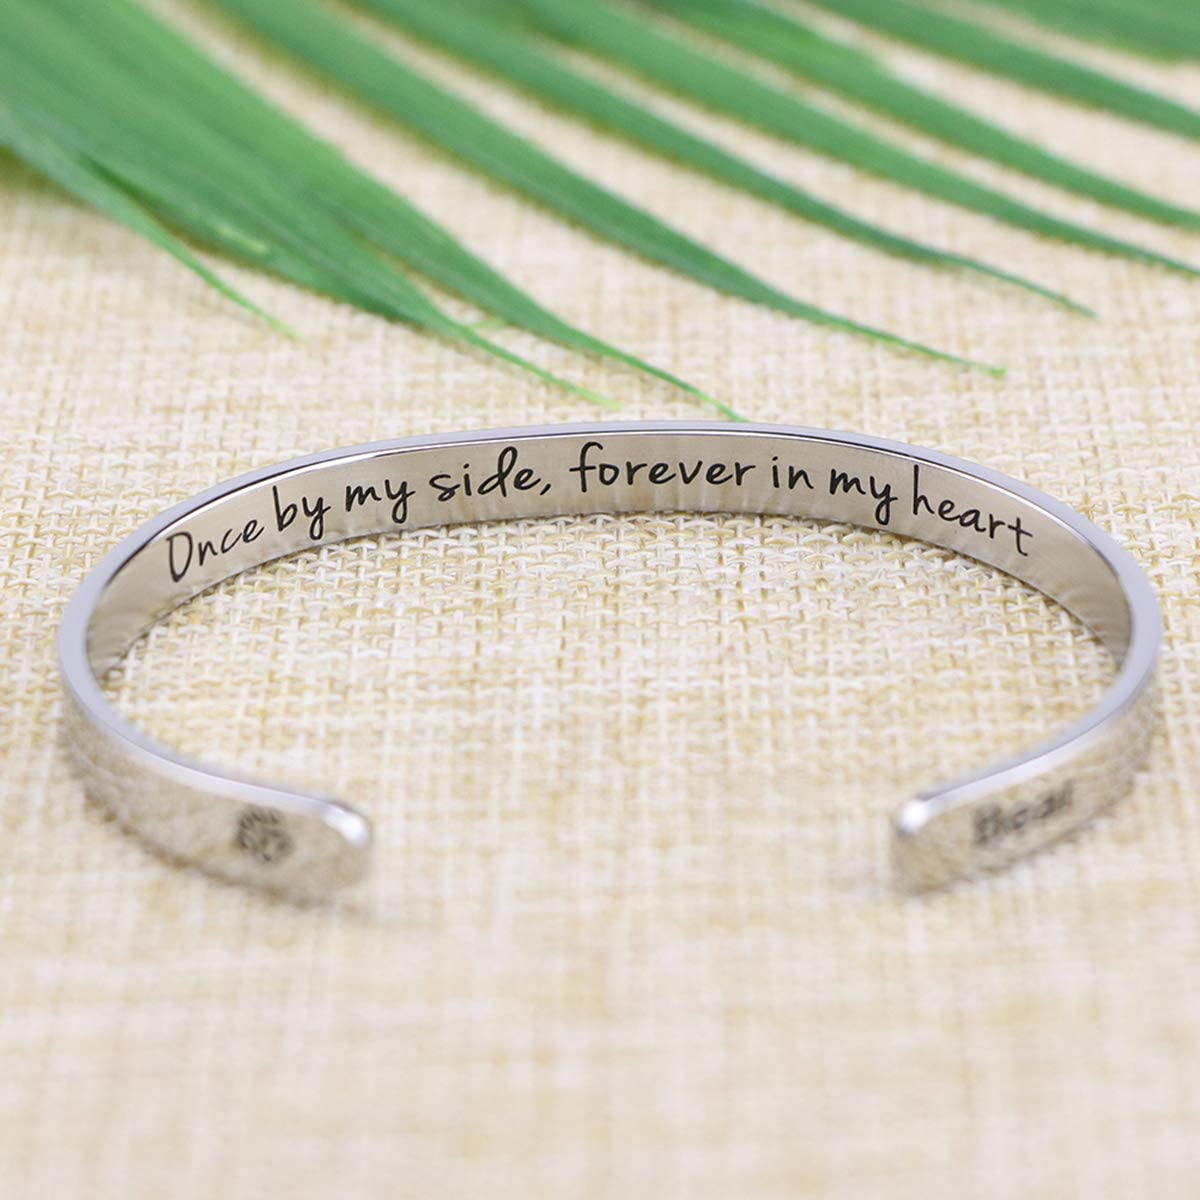 MEMGIFT Pet Remembrance Gift Sympathy Cuff Bracelet Pets Loss Stainless Steel Bangle Engraved Dog Name Daisy